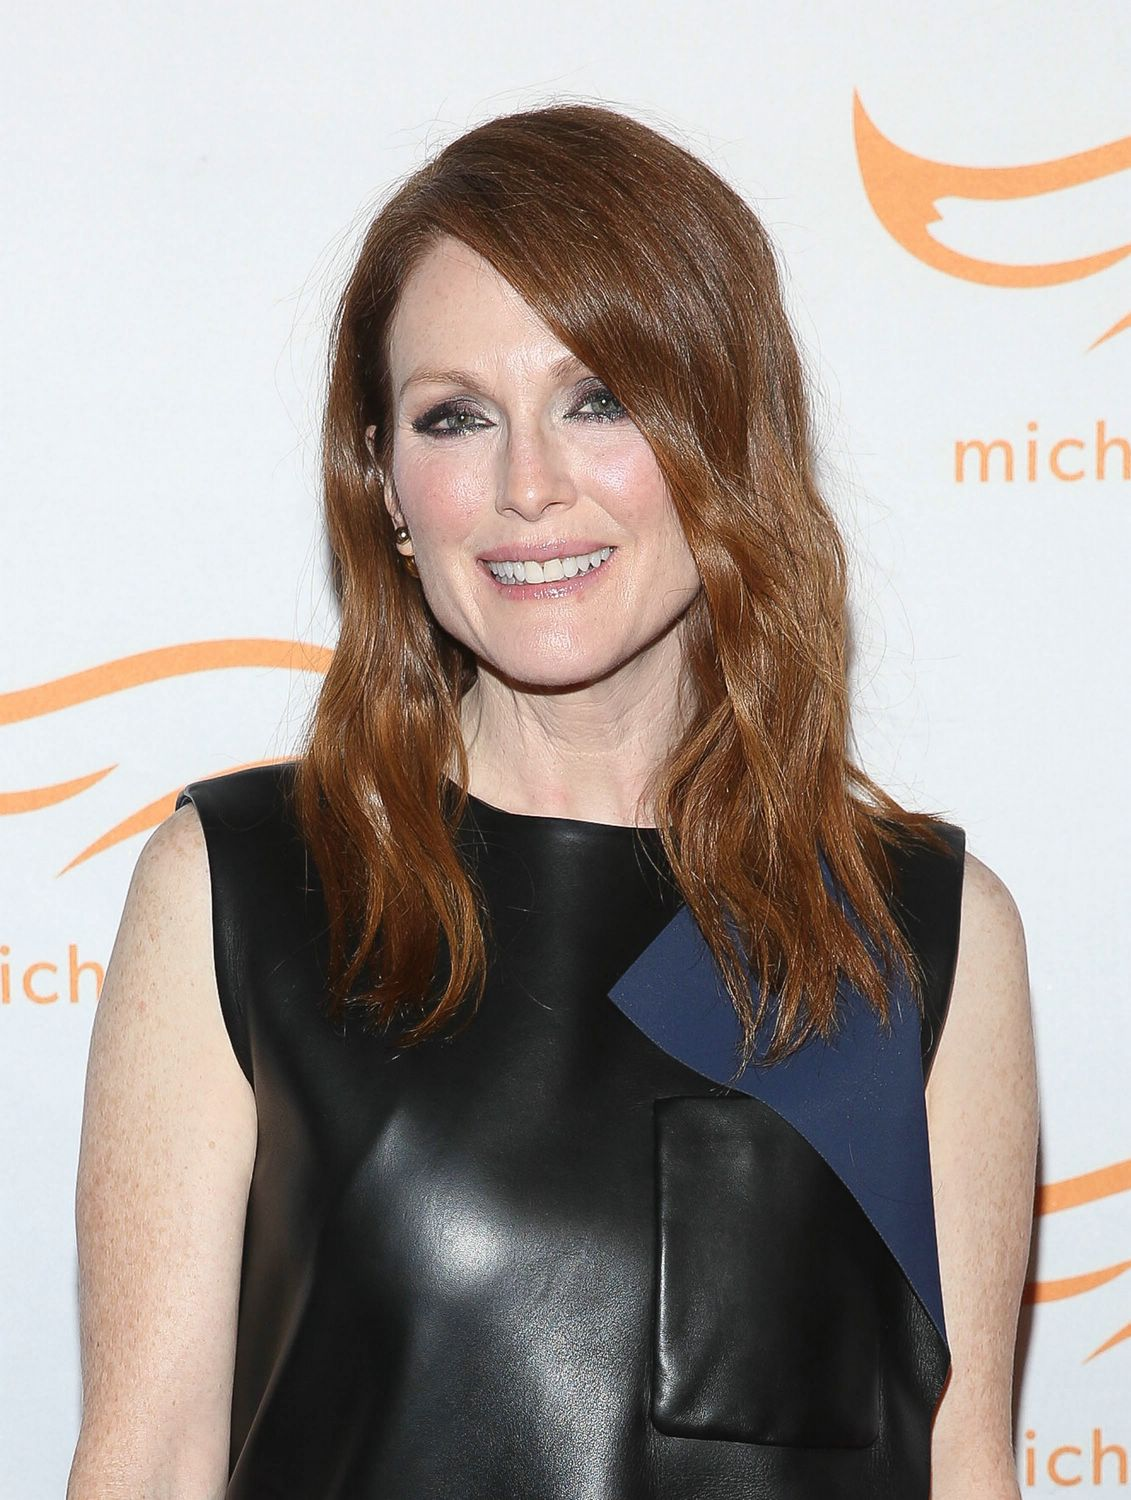 Julianne-moore-parkinson-event-nov-2204